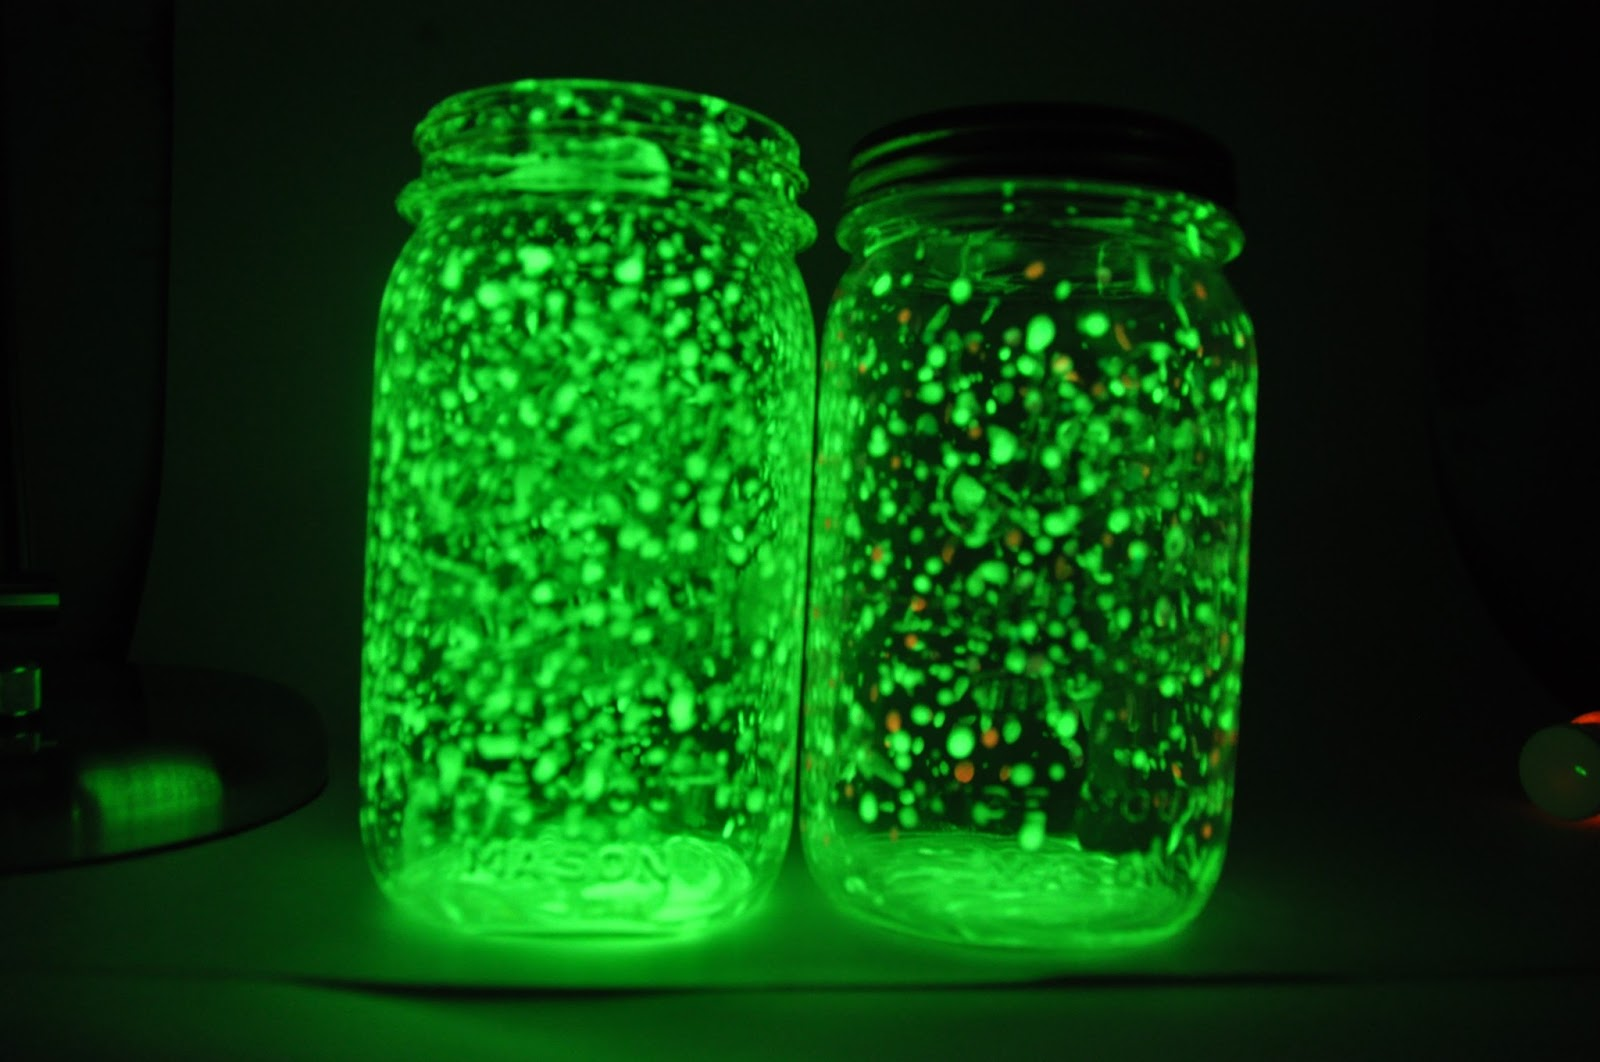 Made With : DIY Rechargeable Fairy Glow Jars Glow Stick Lighting Ideas Html on glow sticks in water, glow sticks cool, glow stick party decoration ideas, glow stick outdoor ideas, led lighting ideas, glow sticks in balloons, glow stick costume ideas, fun with glow sticks ideas, glow stick craft ideas, glow stick game ideas, glow sticks in the dark, 10 awesome glow stick ideas, glow stick decorating ideas, glow stick centerpiece ideas, glow in the dark ideas,